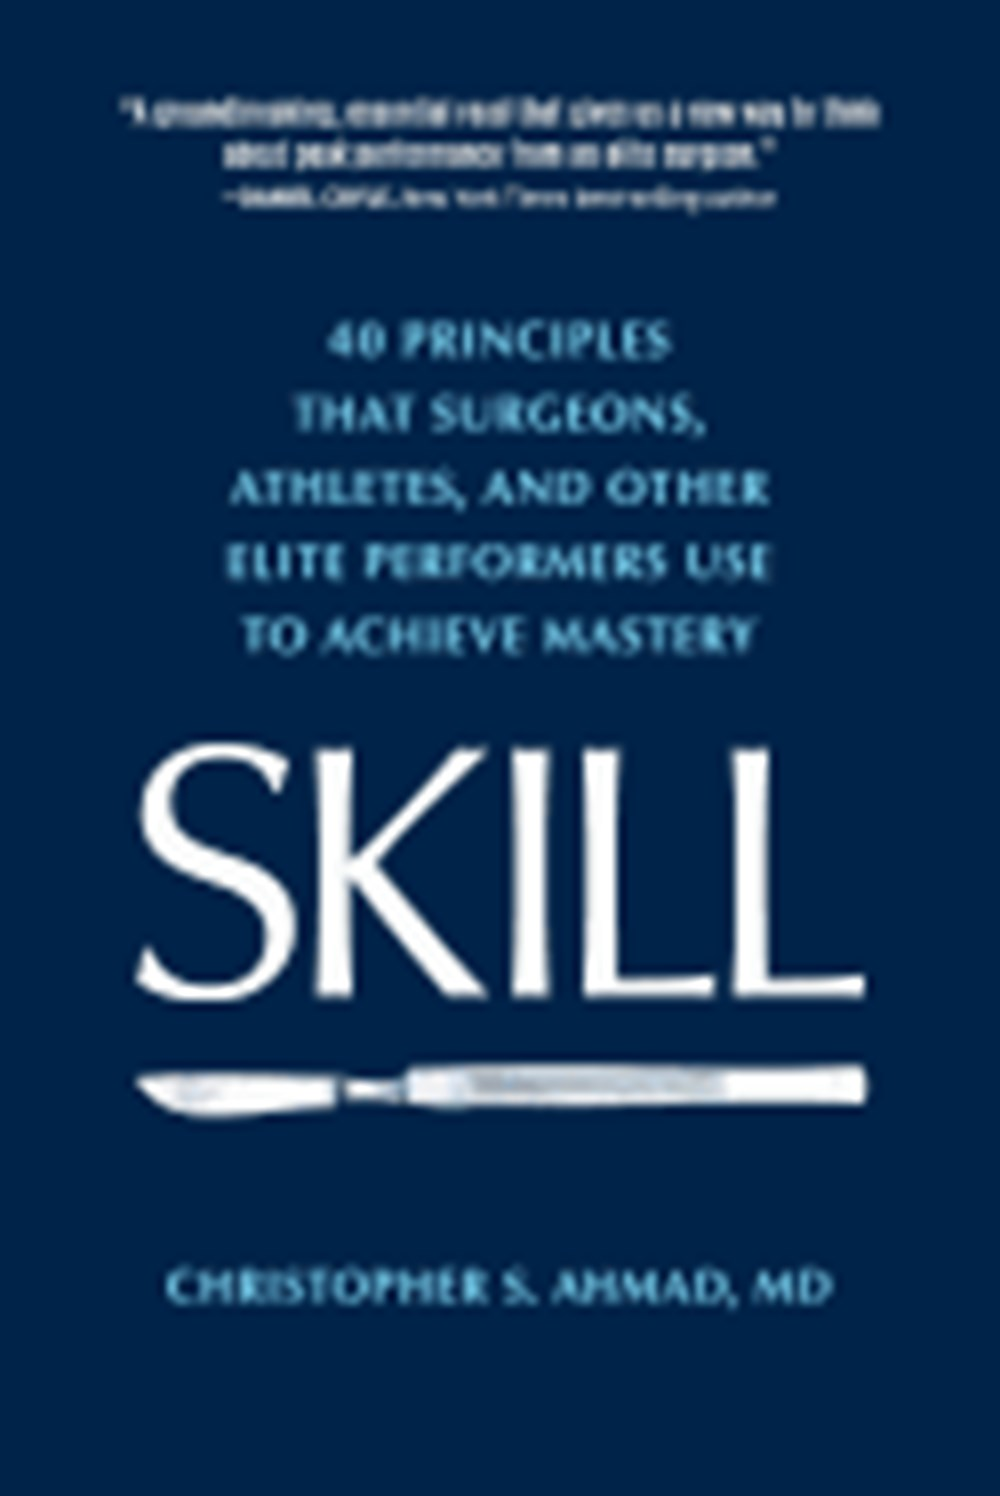 Skill 40 principles that surgeons, athletes, and other elite performers use to achieve mastery